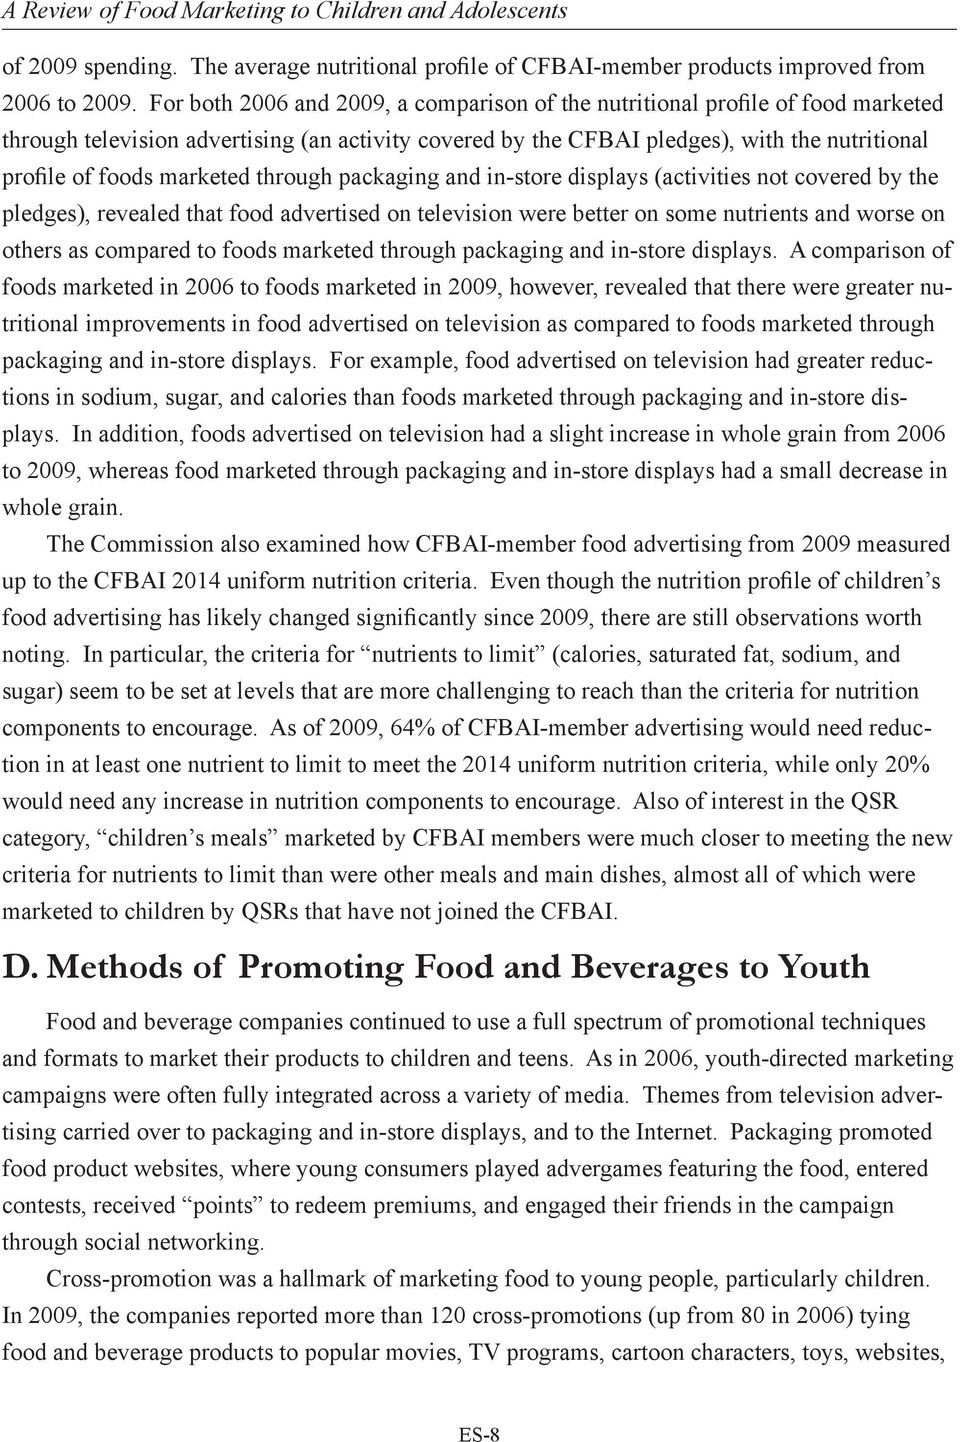 marketed through packaging and in-store displays (activities not covered by the pledges), revealed that food advertised on television were better on some nutrients and worse on others as compared to